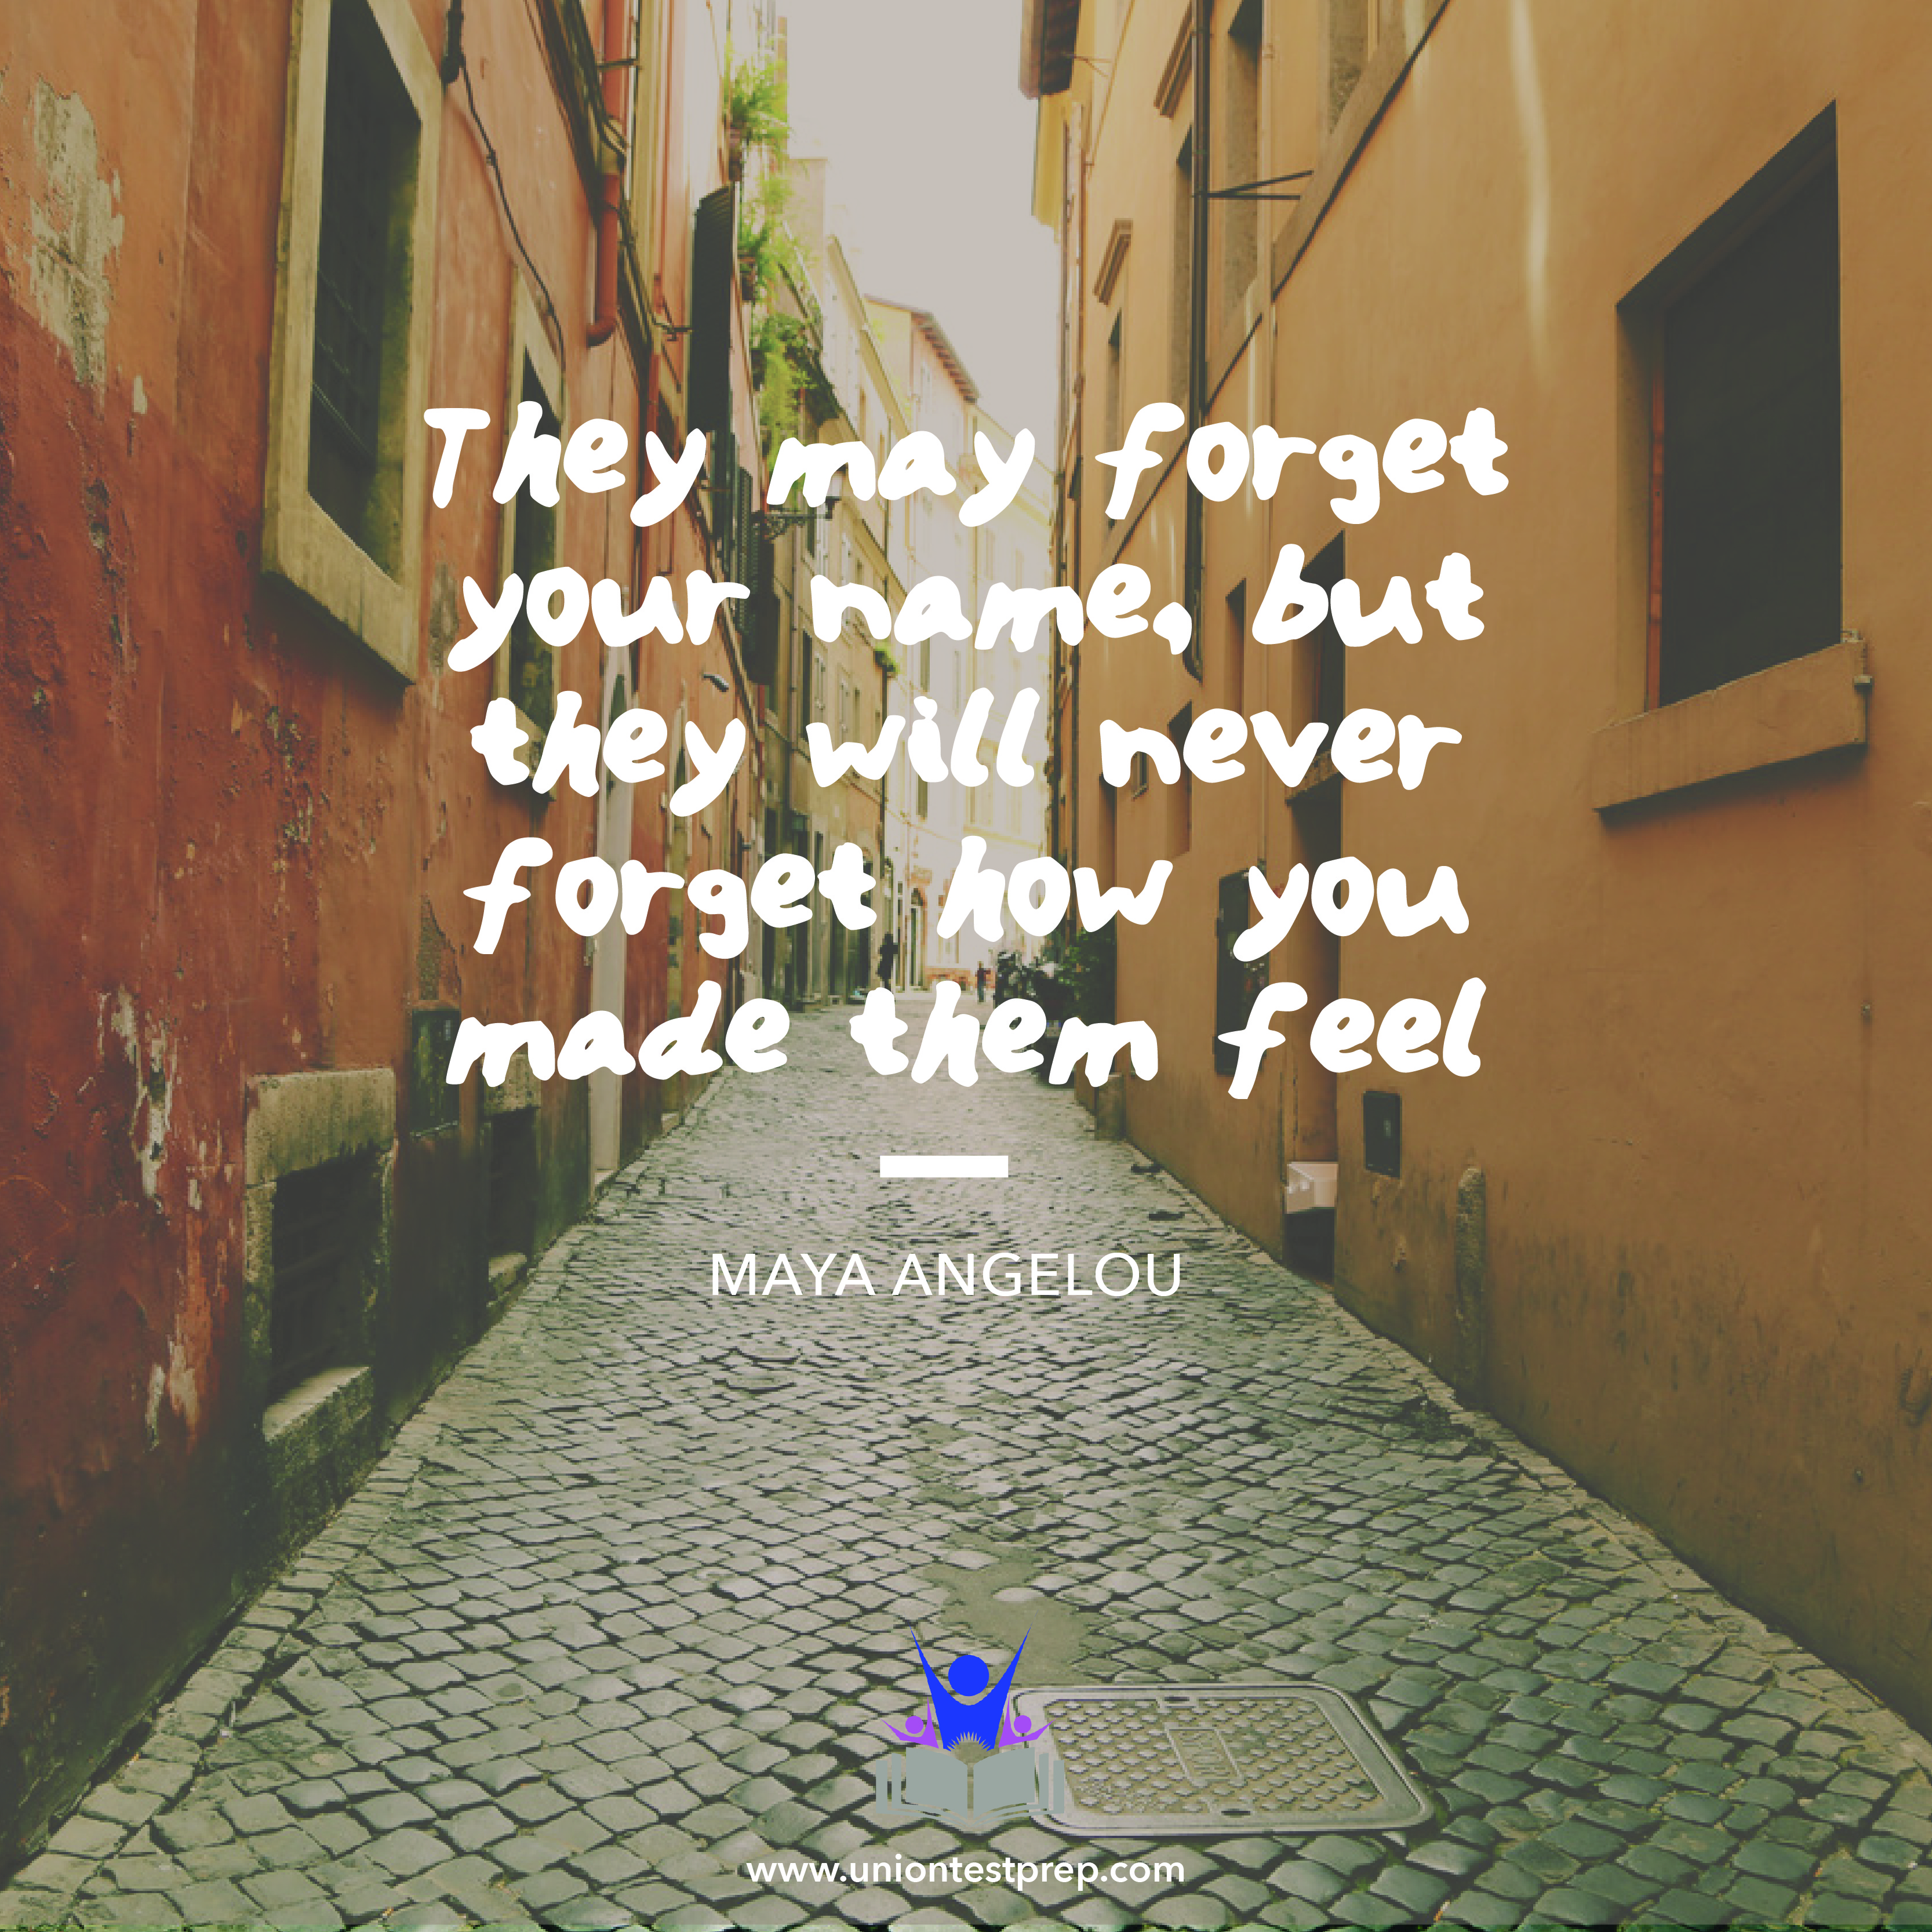 They may forget your name, but they will never forget how you made them feel Maya Angelou